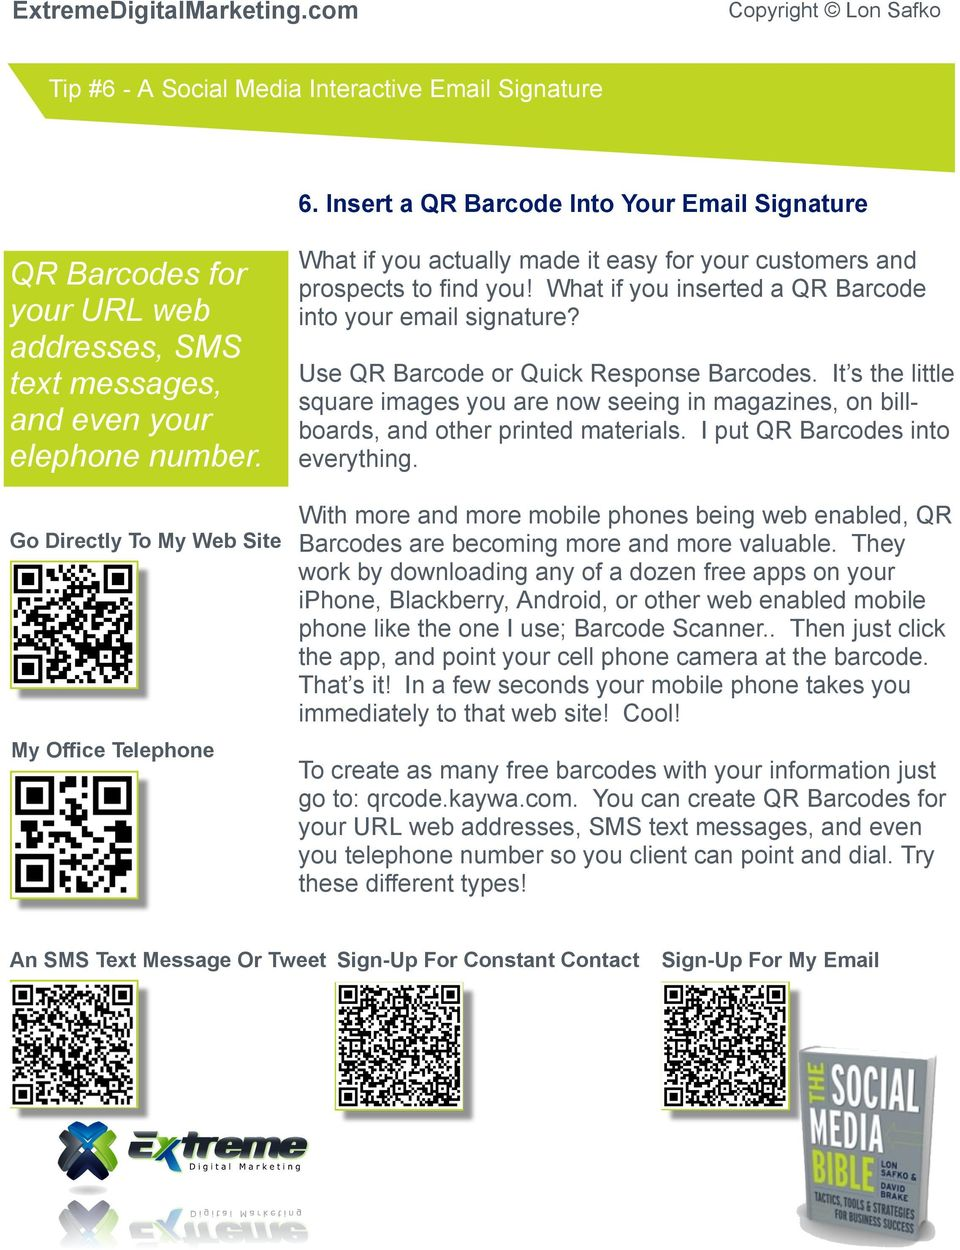 Use QR Barcode or Quick Response Barcodes. It s the little square images you are now seeing in magazines, on billboards, and other printed materials. I put QR Barcodes into everything.